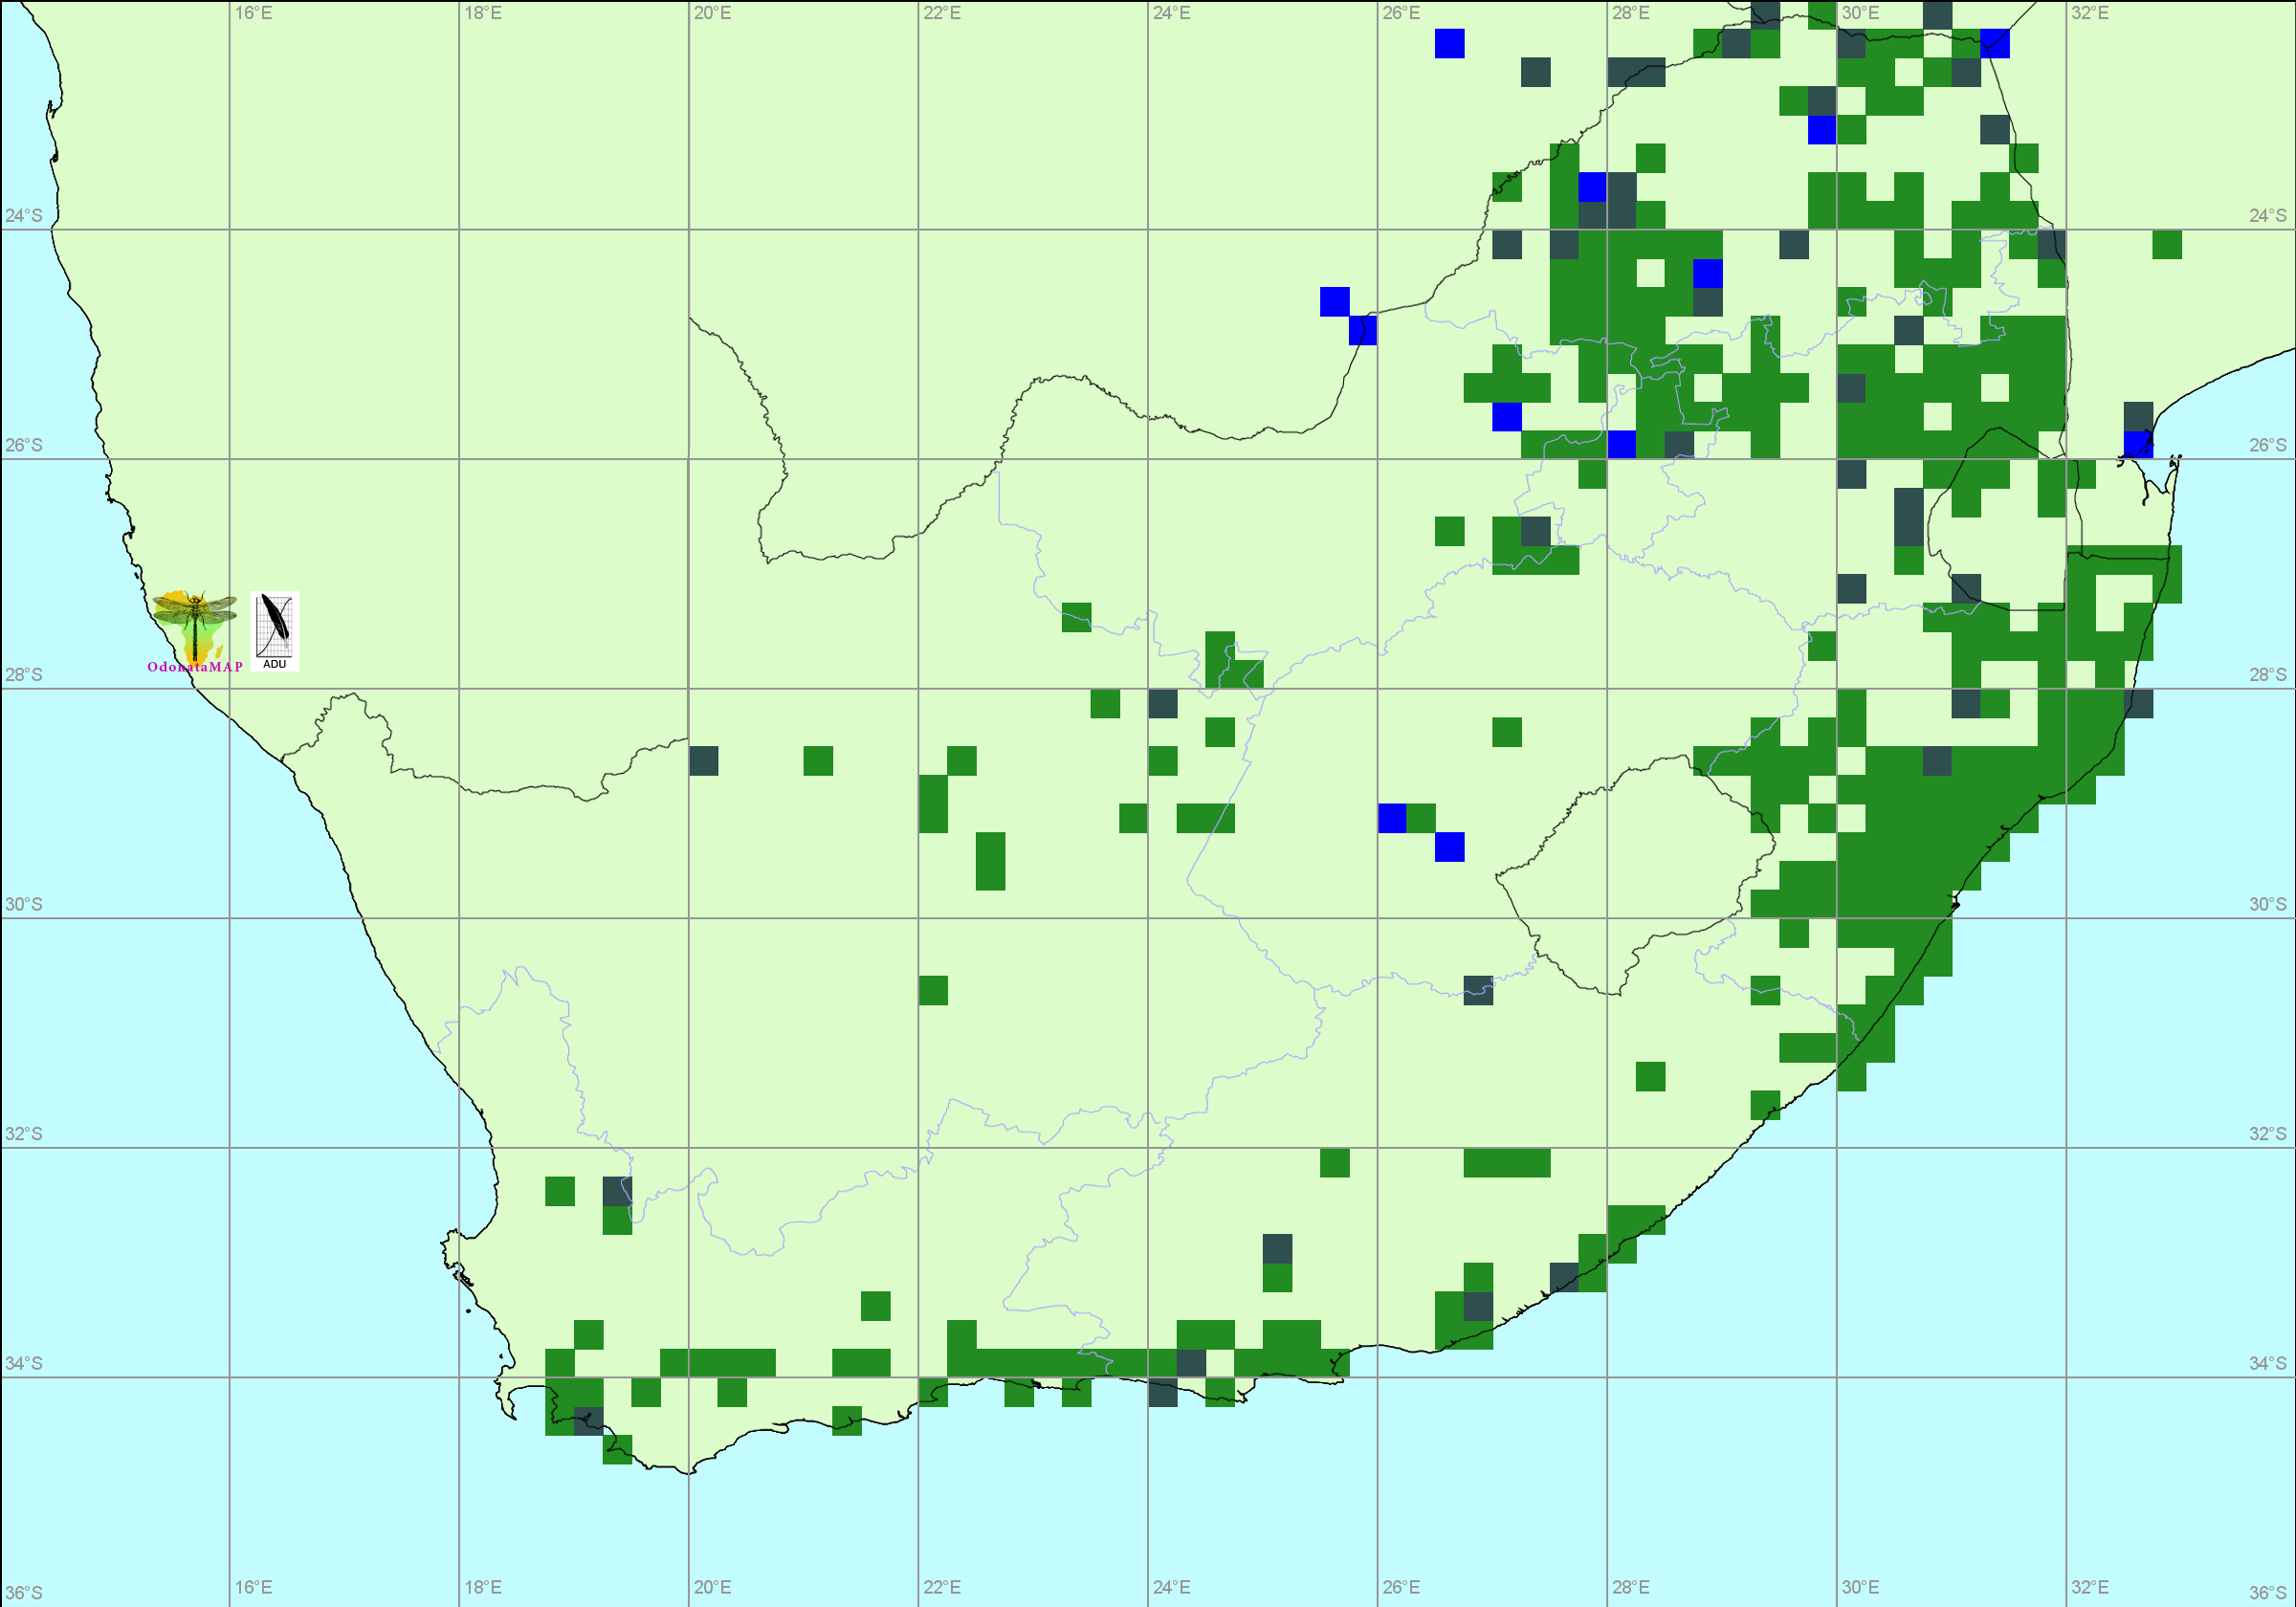 http://vmus.adu.org.za/vm_map_afr.php?&database=odonata&grid=2&outline=1&key=0&map=3&spp=667690